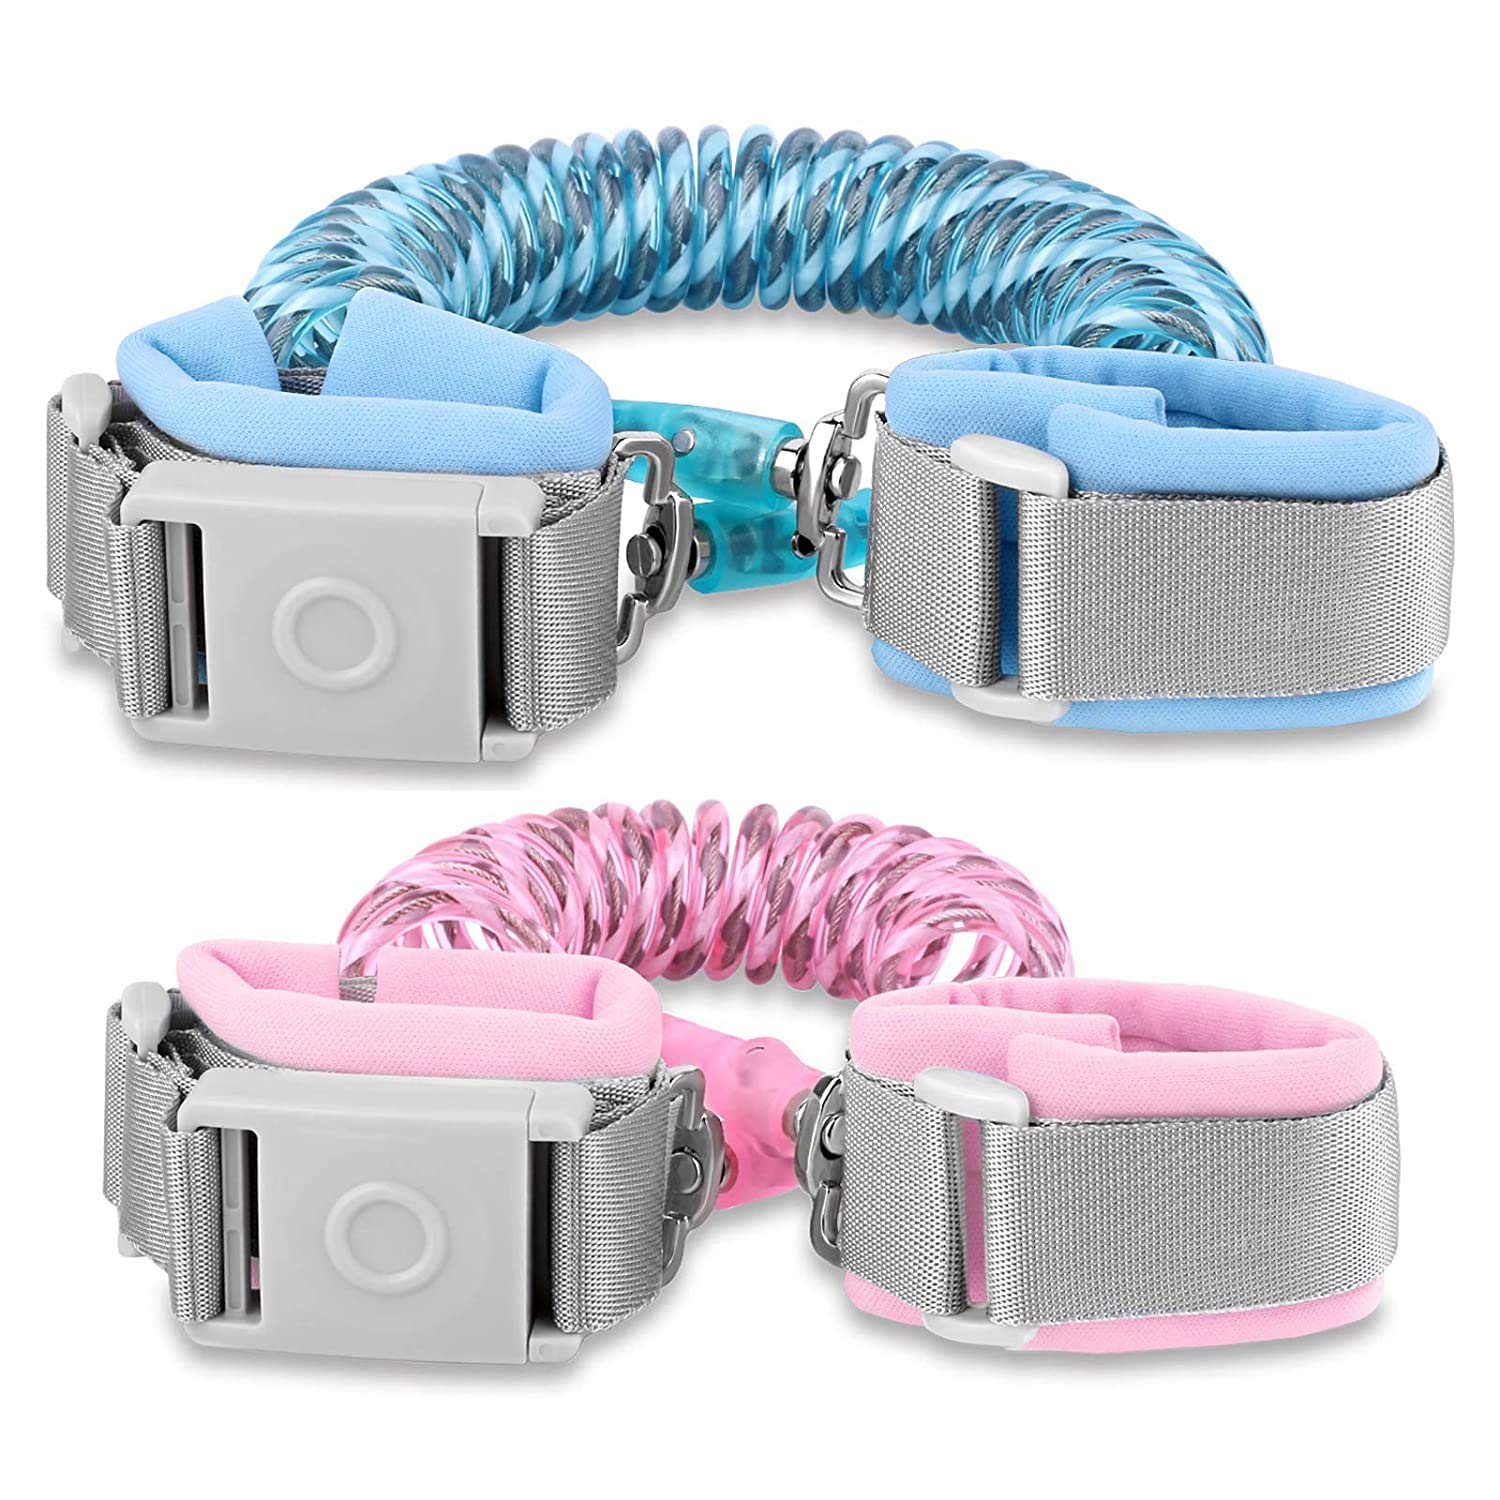 Anti Lost Waist Belt Magnetic Induction Lock Outdoor Safety Wristband Night Reflective Toddler Safety Harnesses Leashes(Bule and Pink)